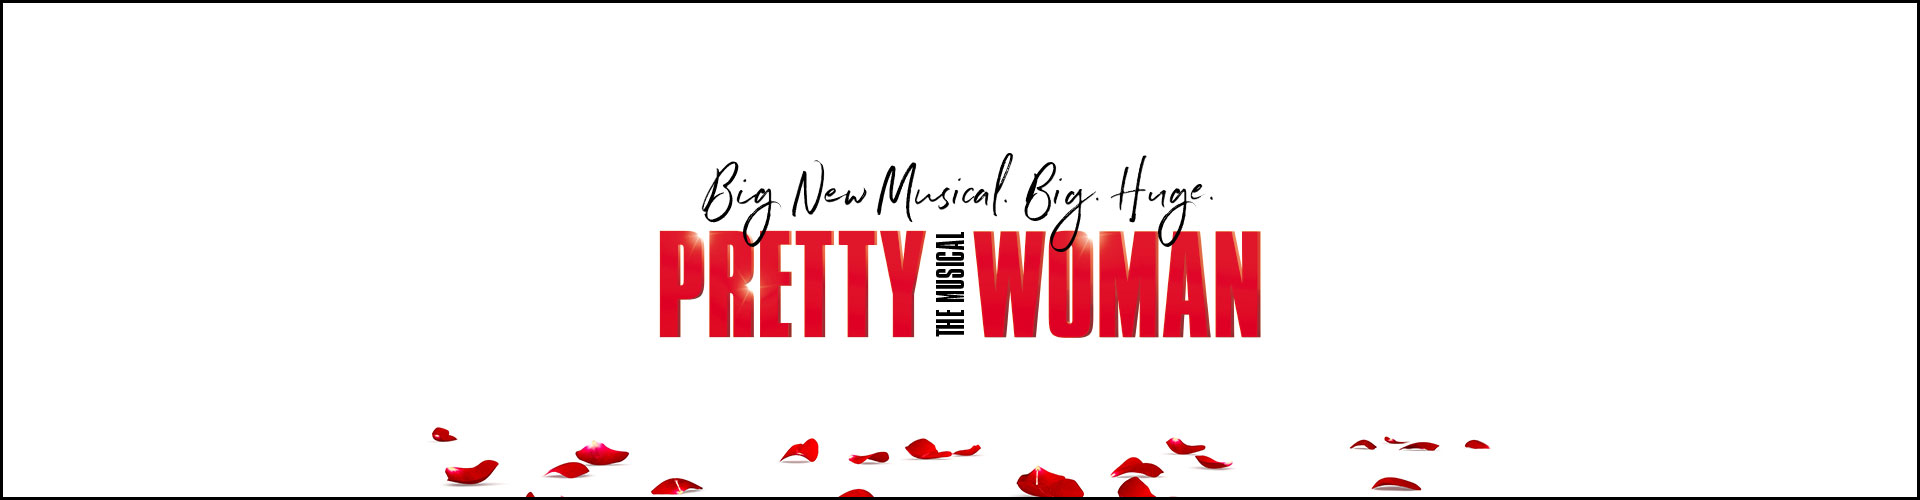 Pretty Woman: The Musical - Postponed: Date TBD